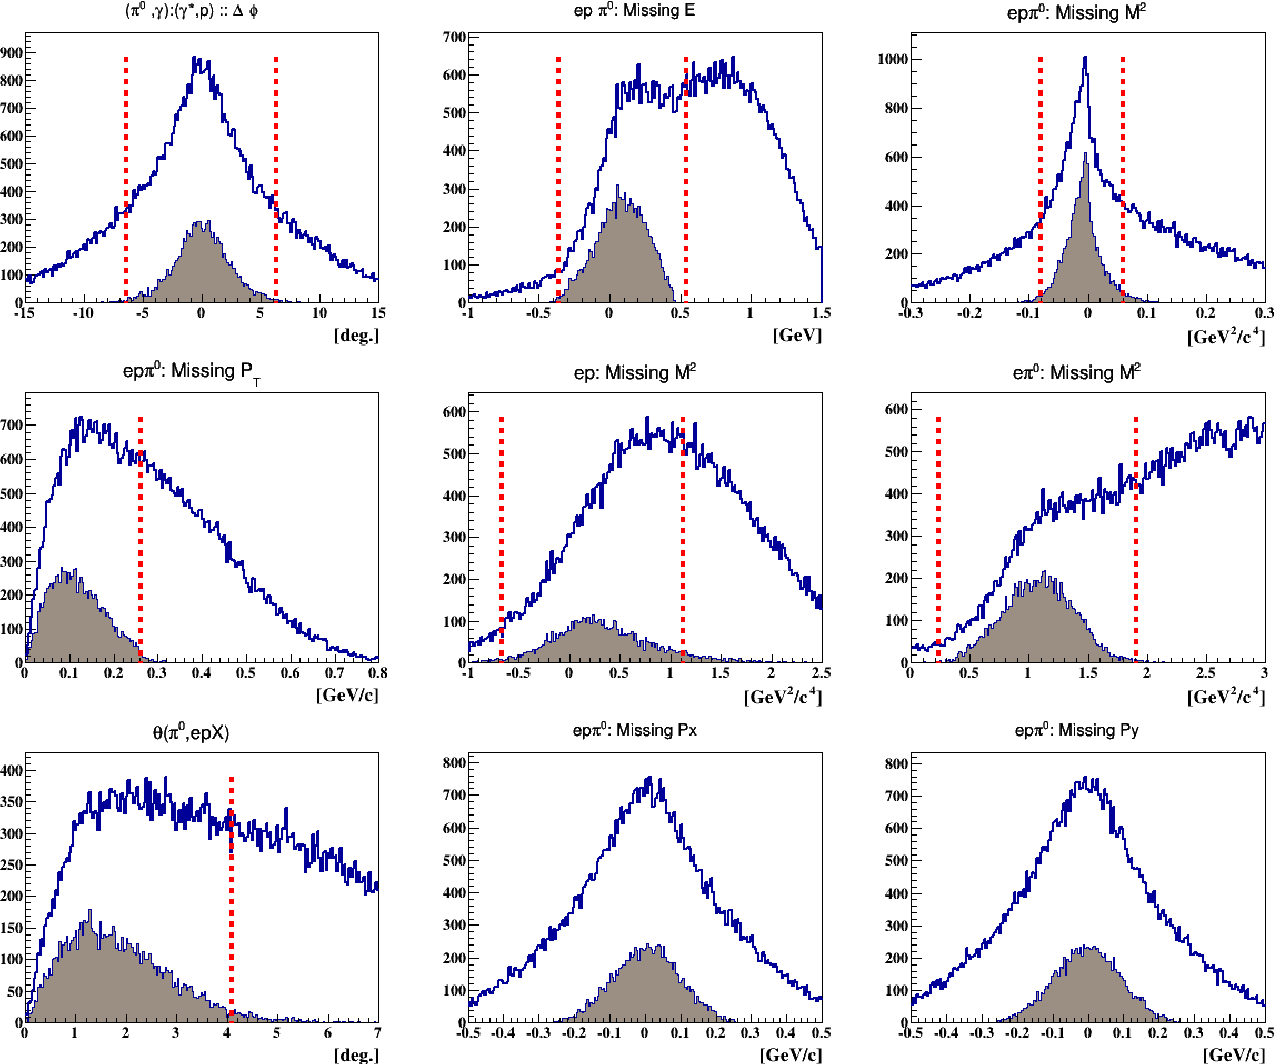 Figure D.4: The blue distributions represent all the epπ0 events before any exclusive requirement. The shaded brown distributions show the events which passed all the exclusivity cuts except the quantity plotted. The vertical red lines represent 3σ cuts on the shaded distribution. The mean and sigma values of each distribution are listed in table E.4.